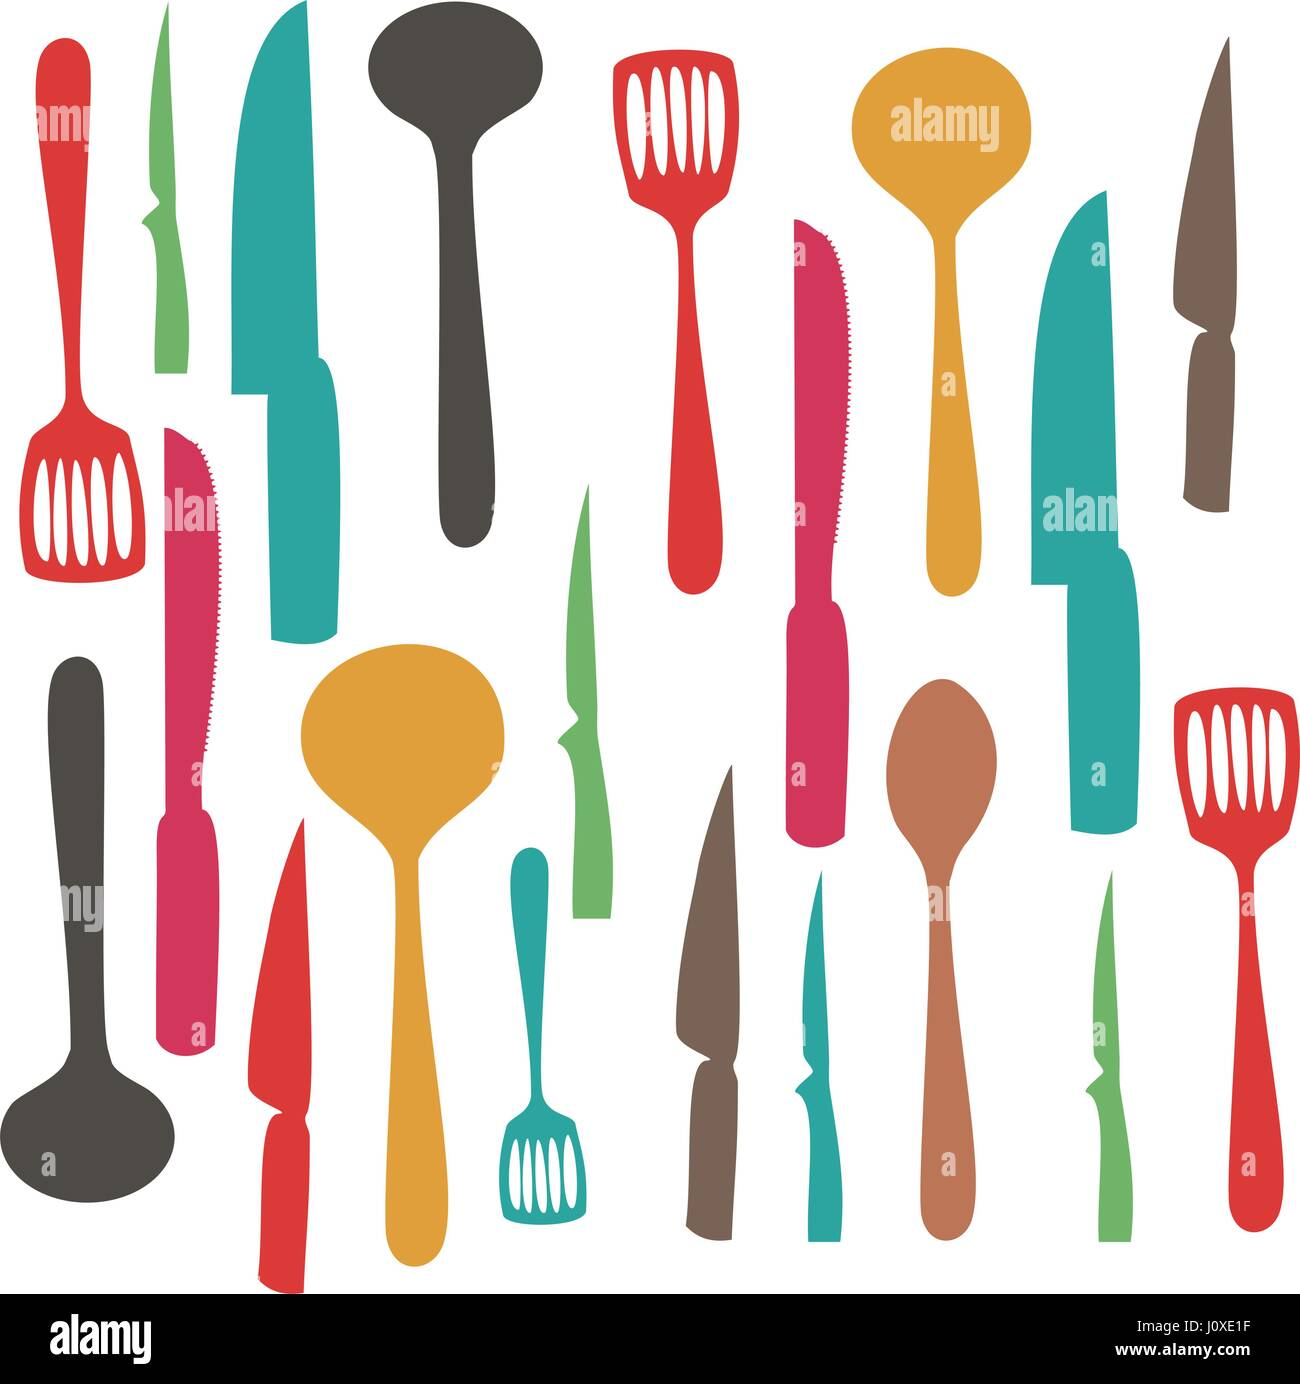 colorful set pattern of kitchen utensils - Stock Vector